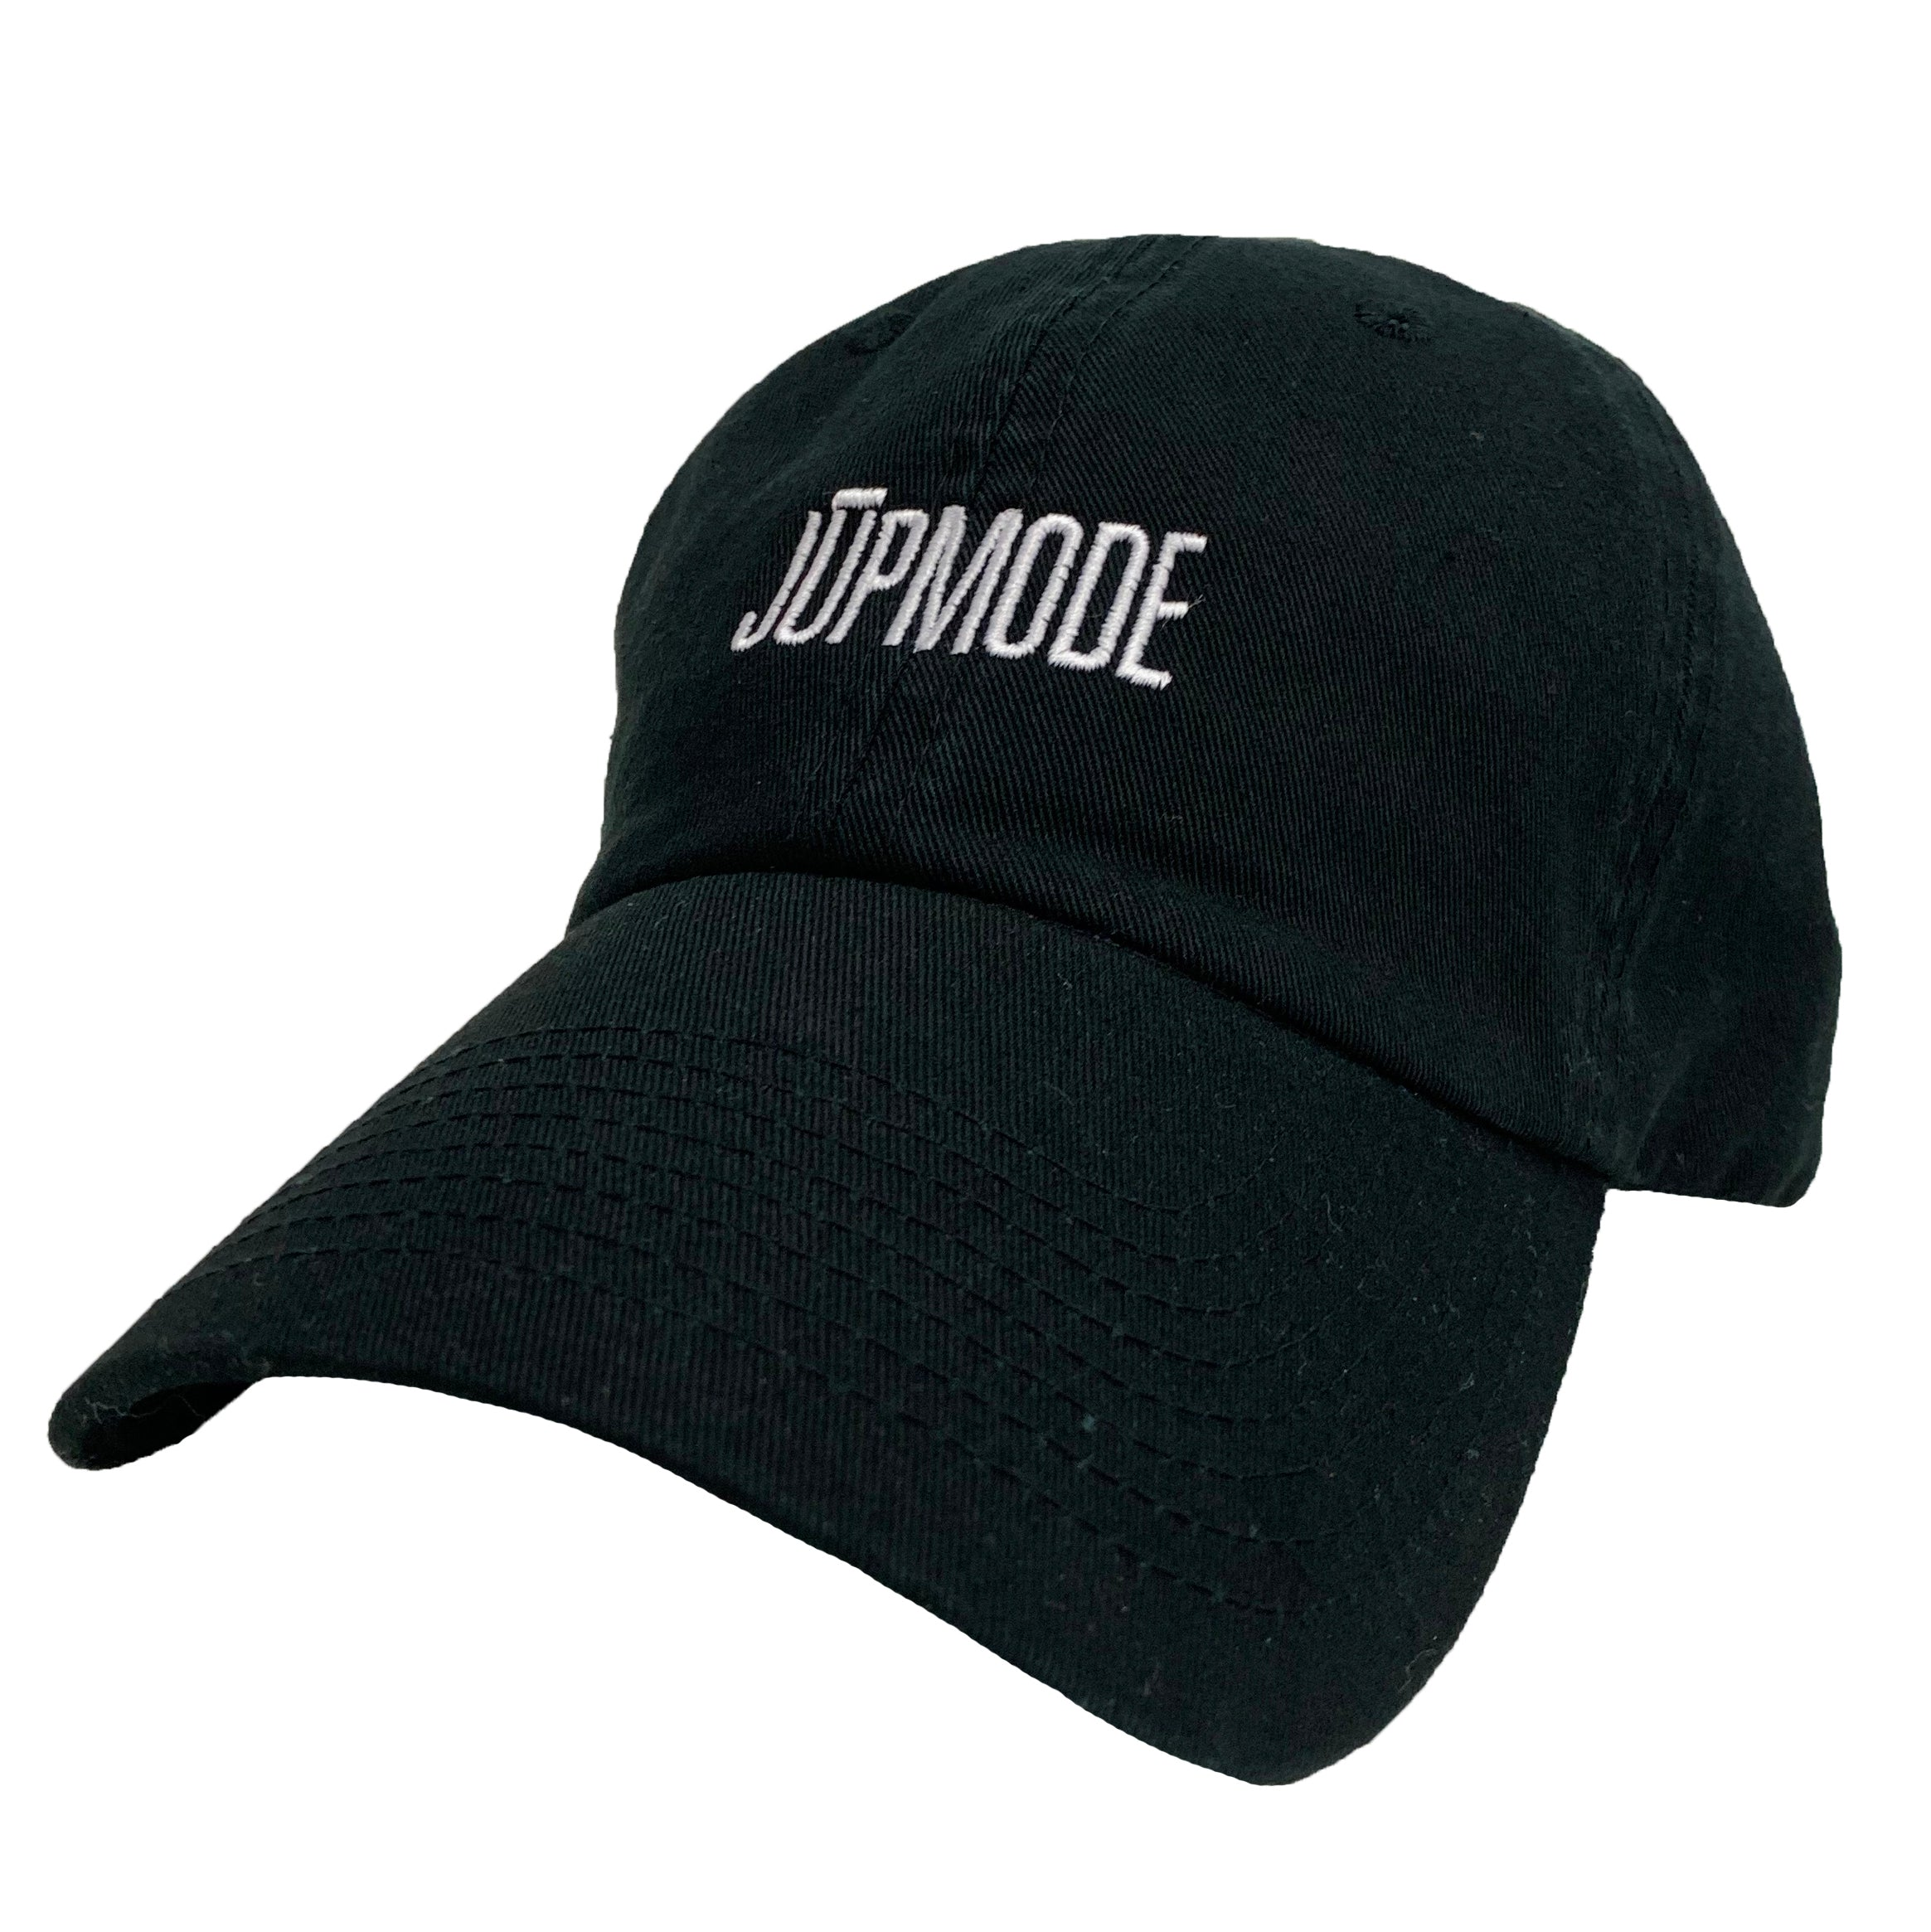 Jupmode Logo Black Hat